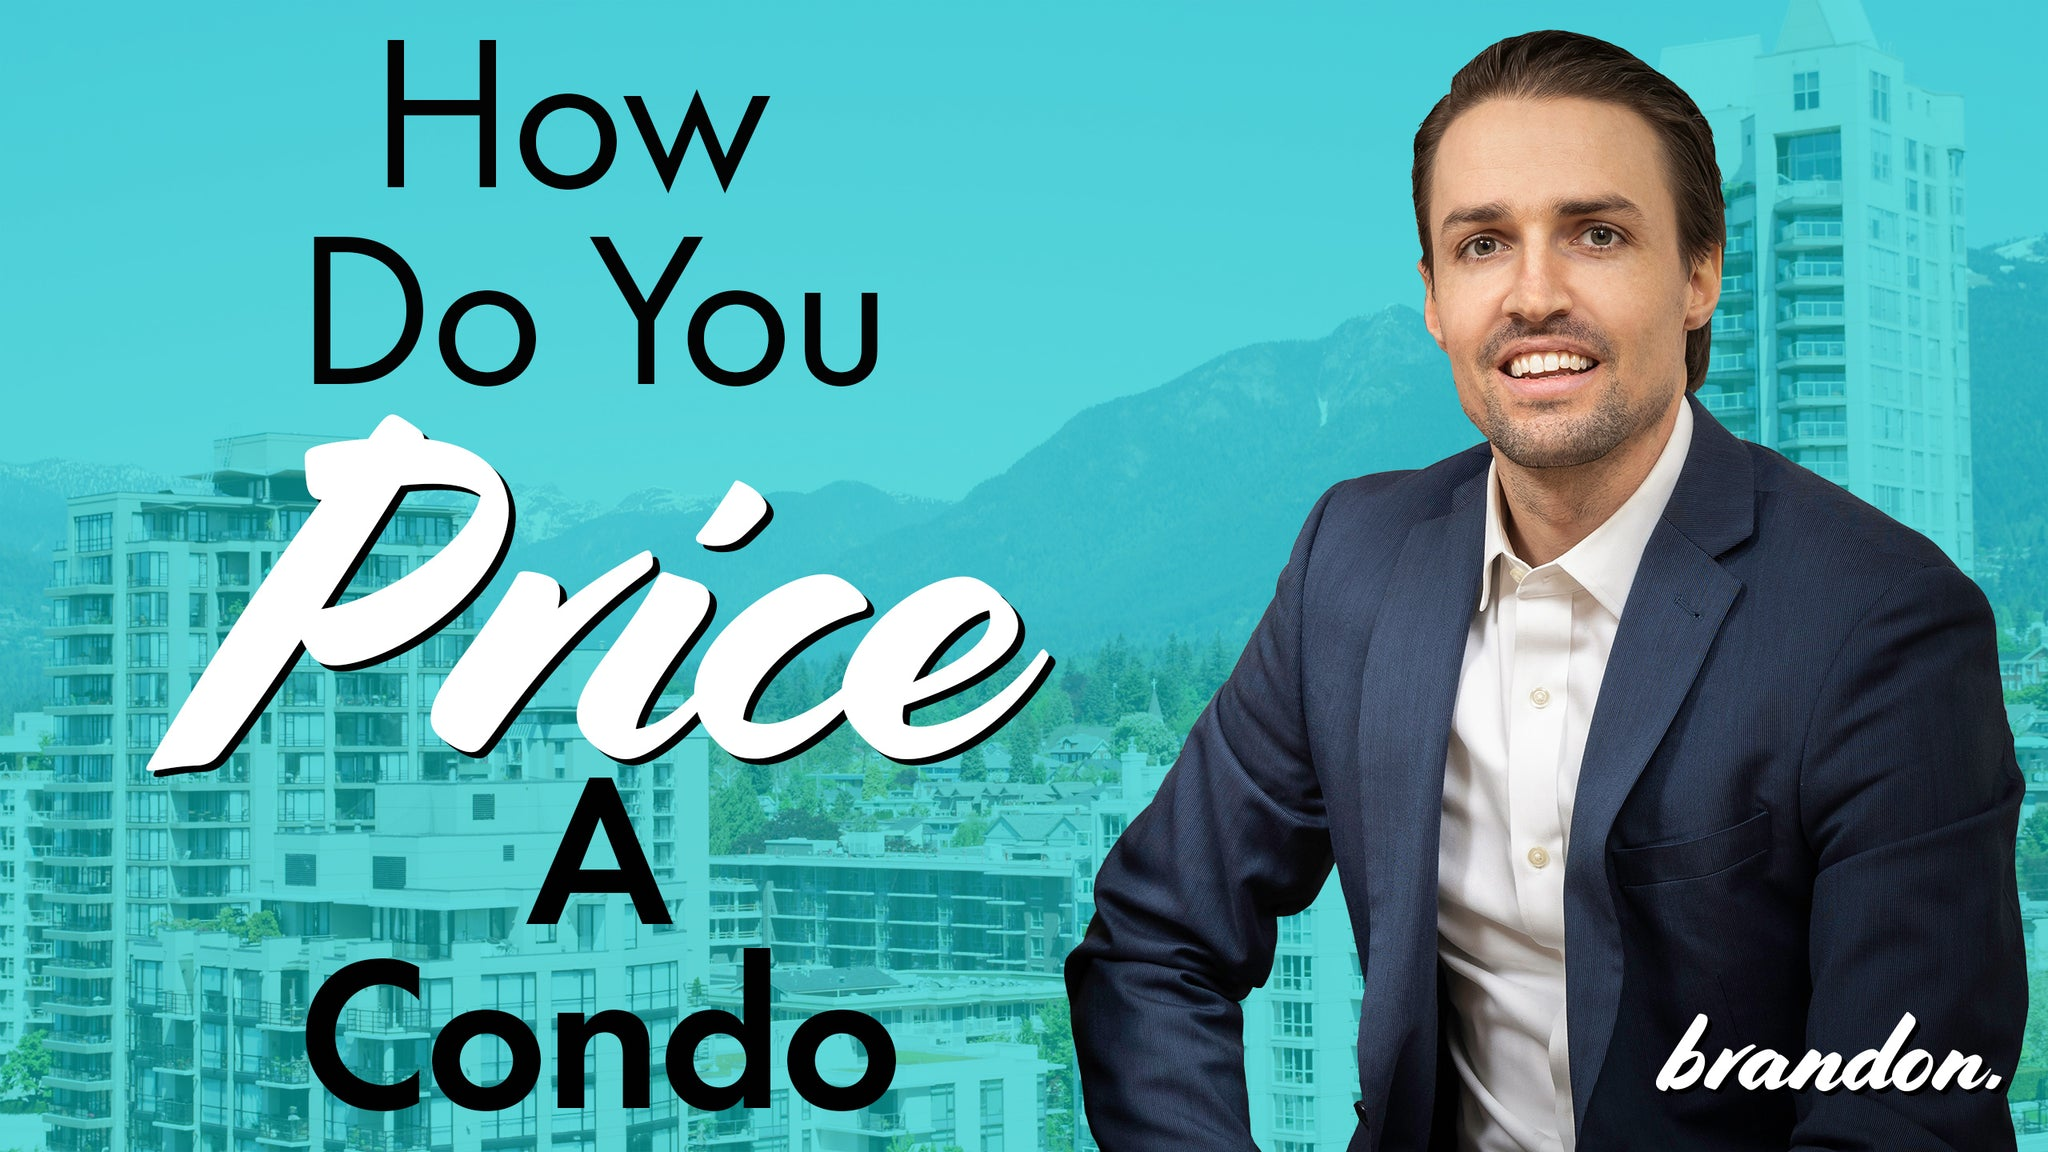 How To Price A Condo - Marketing Campaign with Real Estate Agent Brandon Crichton